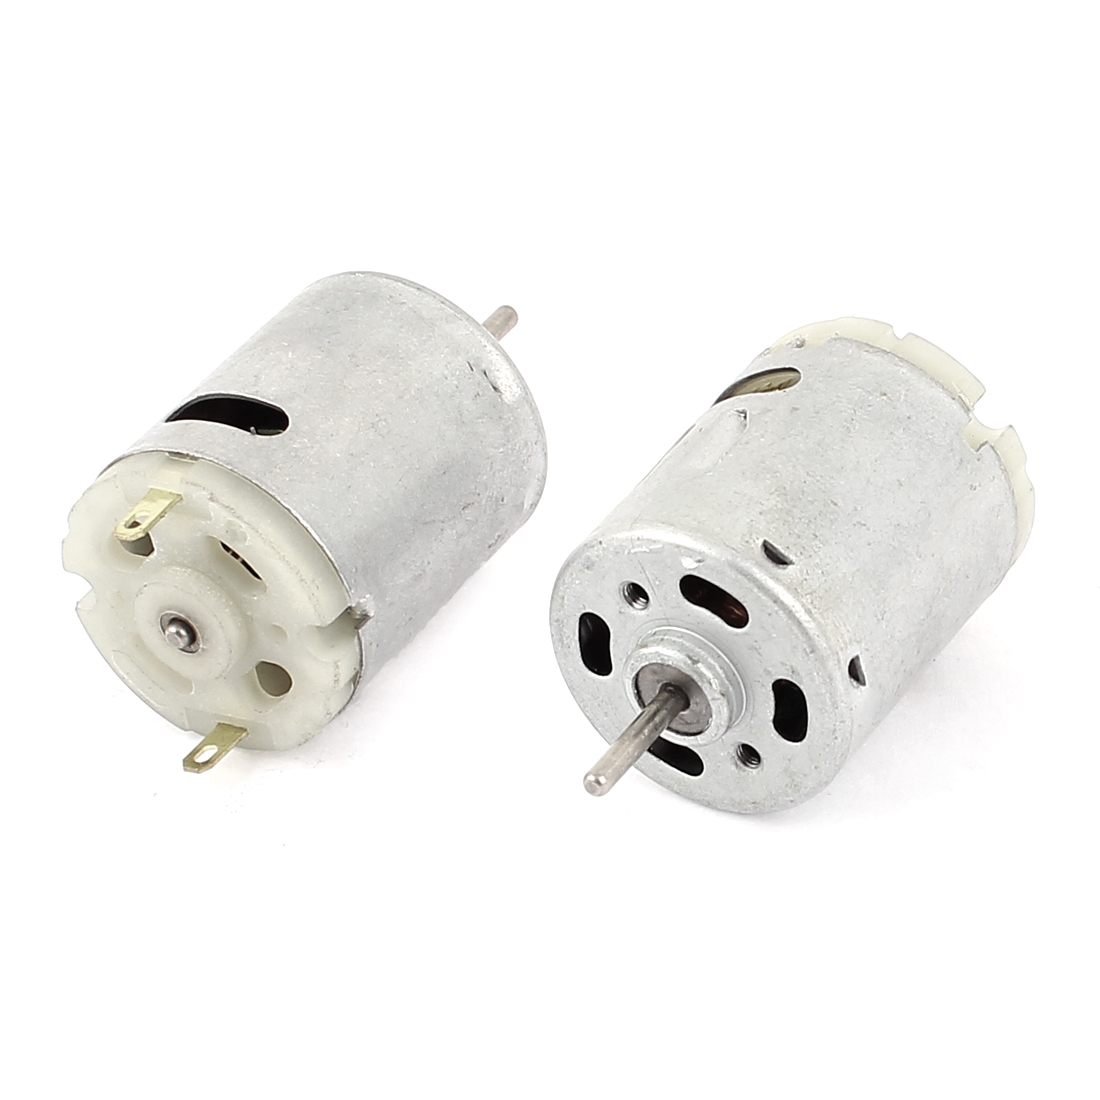 2 Pcs DC 3-36V 12000RPM High Speed Electric Mini Motor for RC Model Toy